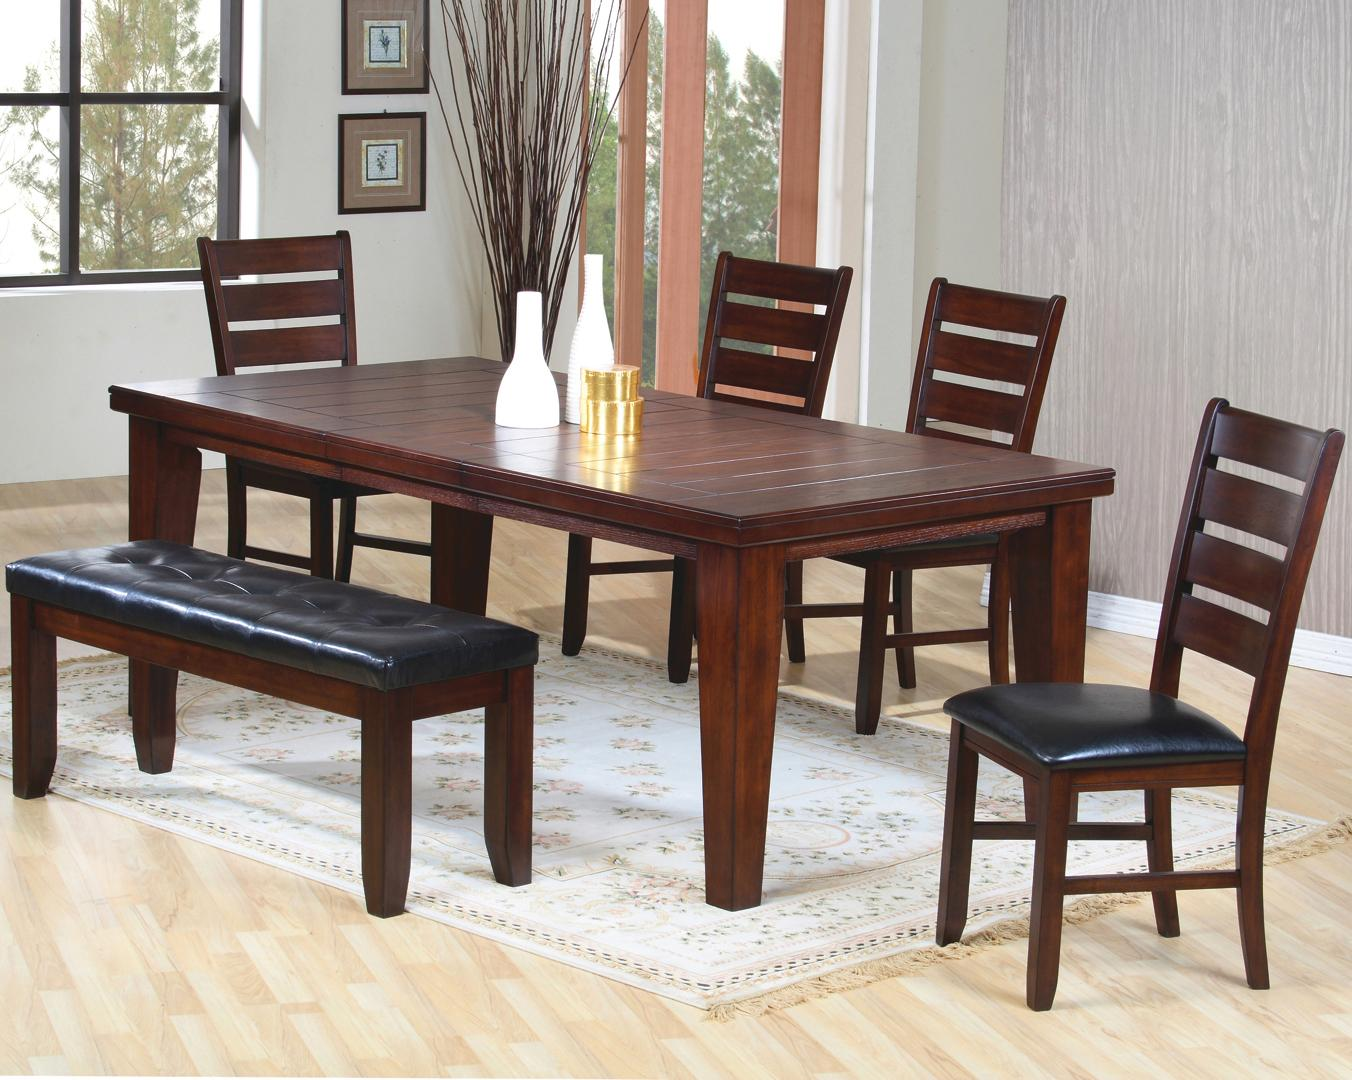 Coaster Imperial 6 Piece Dining Set - Item Number: 101881+4x2+3